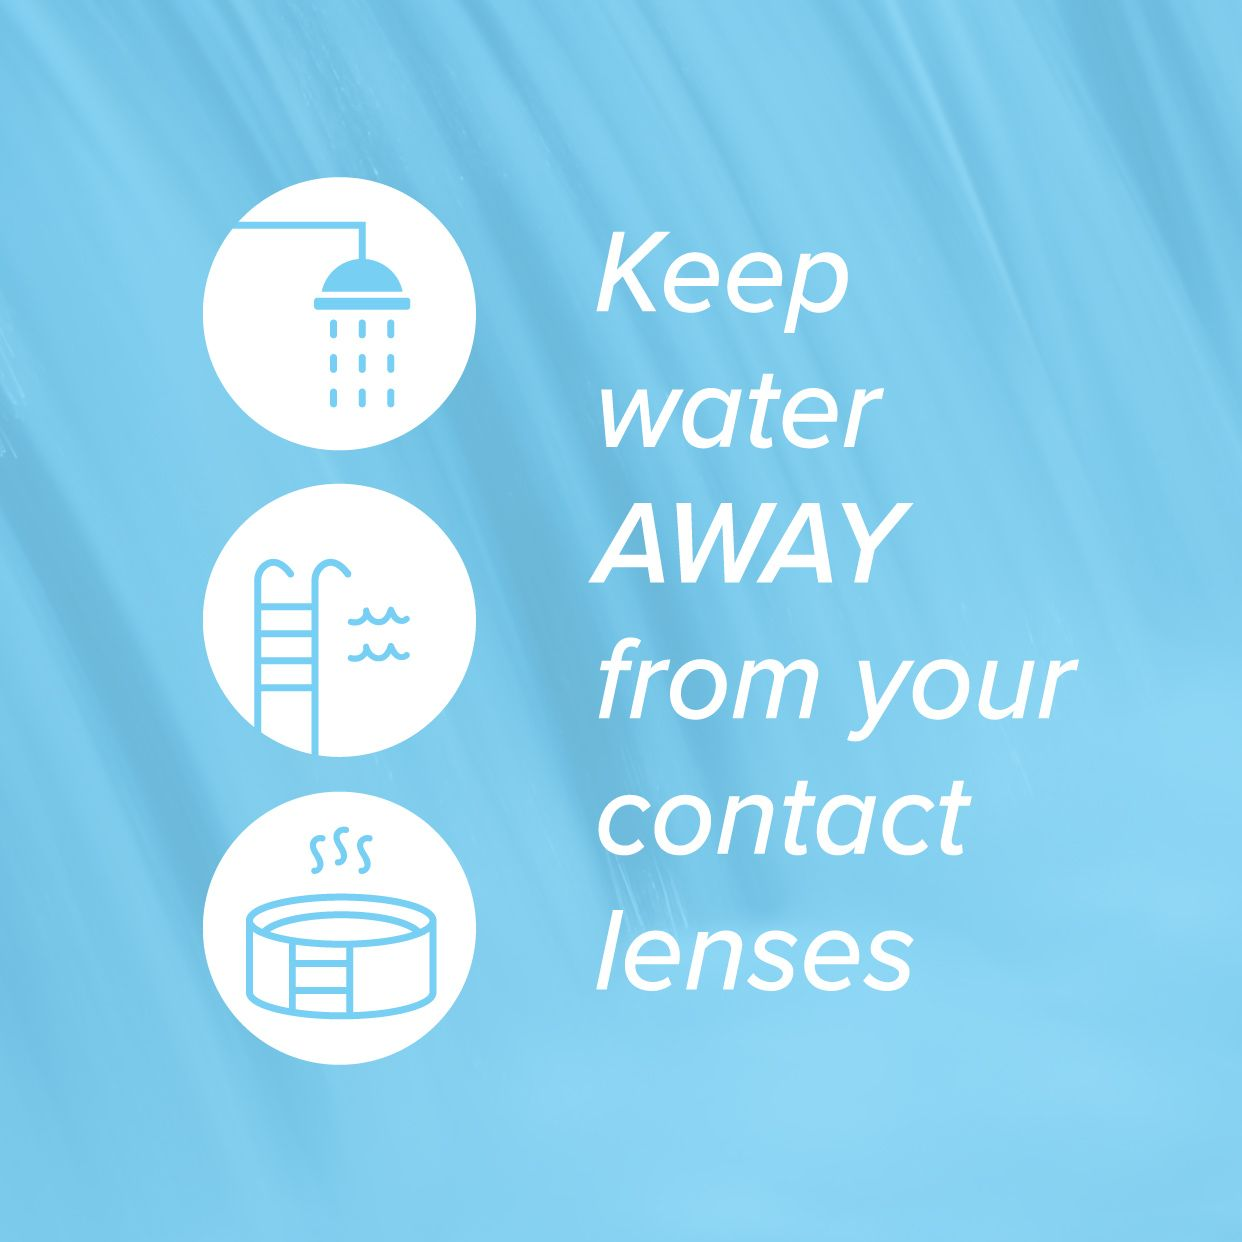 Water Isn T Good For Contact Lenses Because Even Clean Water Contains Microorganisms That Could Give You An Eye Infe Contact Lenses Tips Contact Lenses Lenses